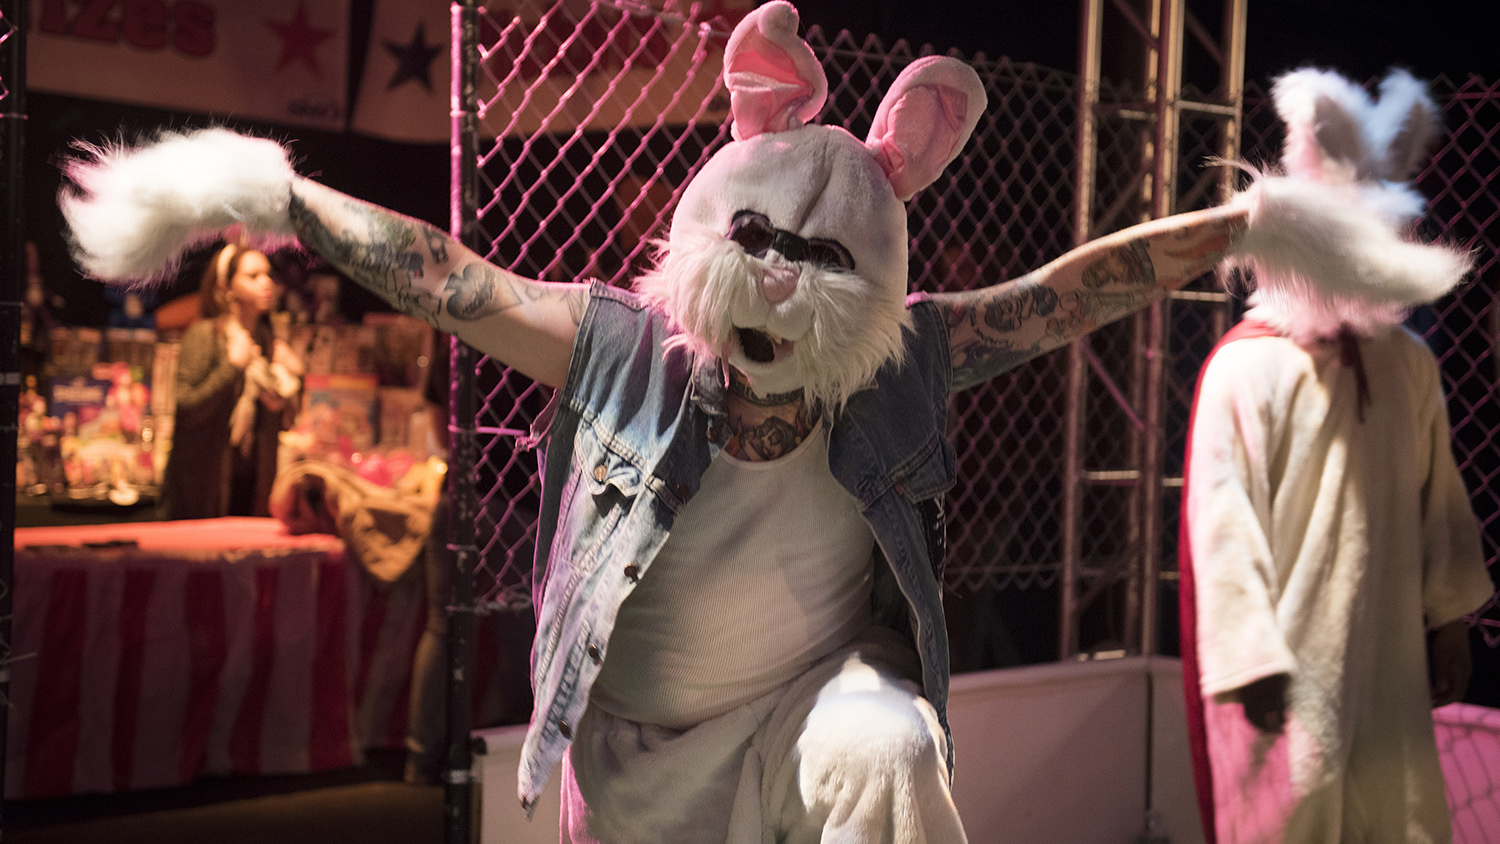 Easter in nyc guide including easter events and brunch deals see photos of the evil monster rabbits at full bunny contact 2015 negle Image collections